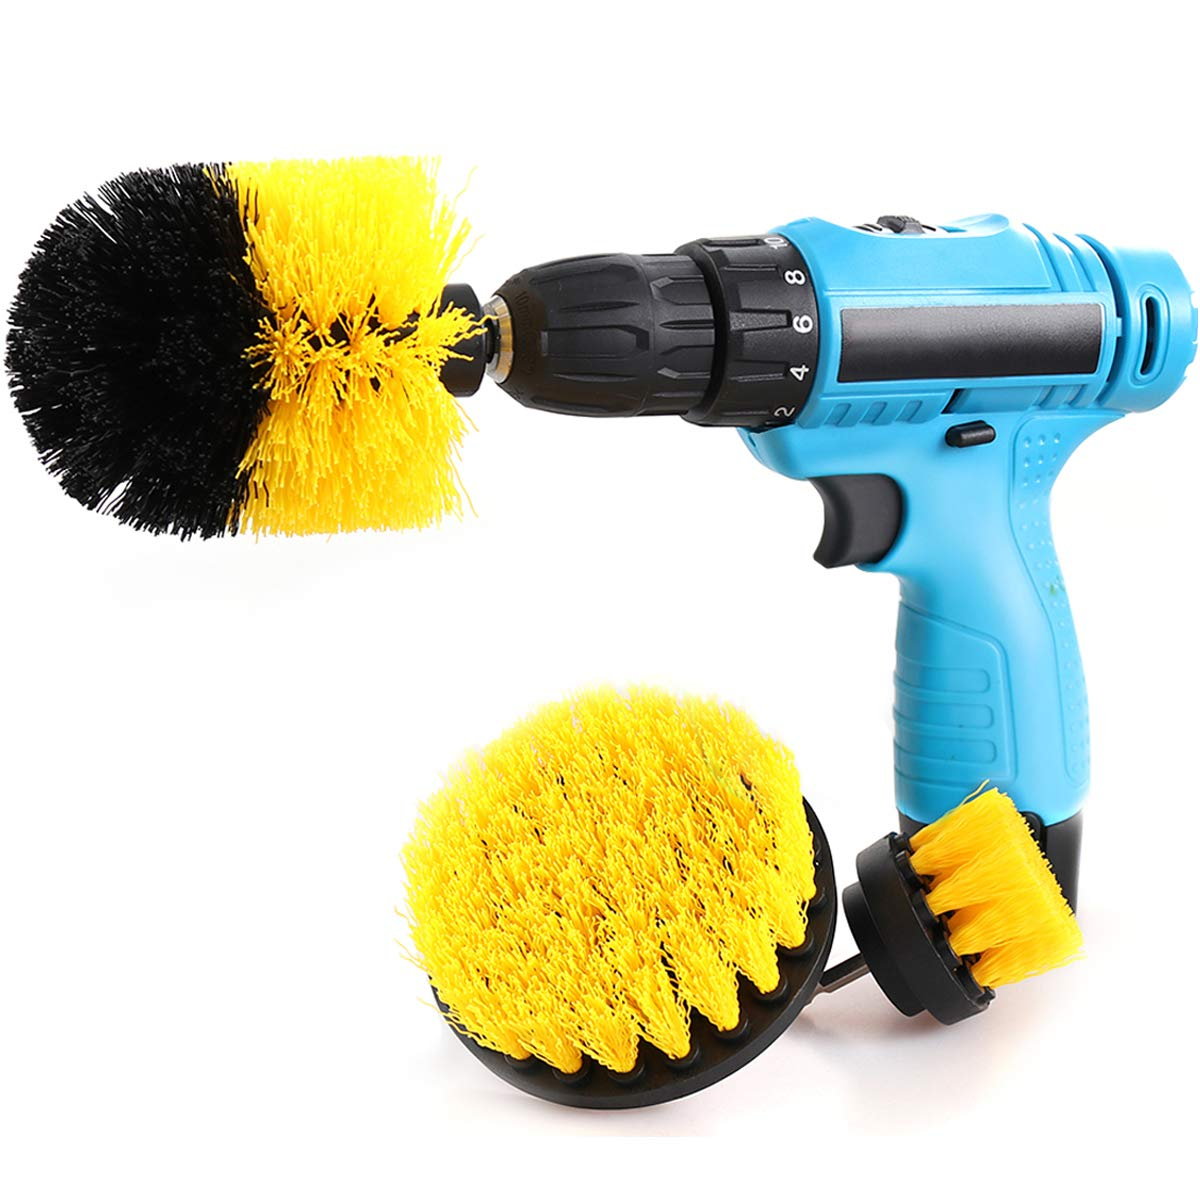 Drill Brush Attachment Kits, 3 Pieces Cleaning Power Scrubber Brush Heads for Cordless/Corded Drills, All Purpose Bathroom Surface, Grout, Tub, Shower, Kitchen, Drill Is Not Included (Medium-Yellow) by HENGQIANG (Image #1)